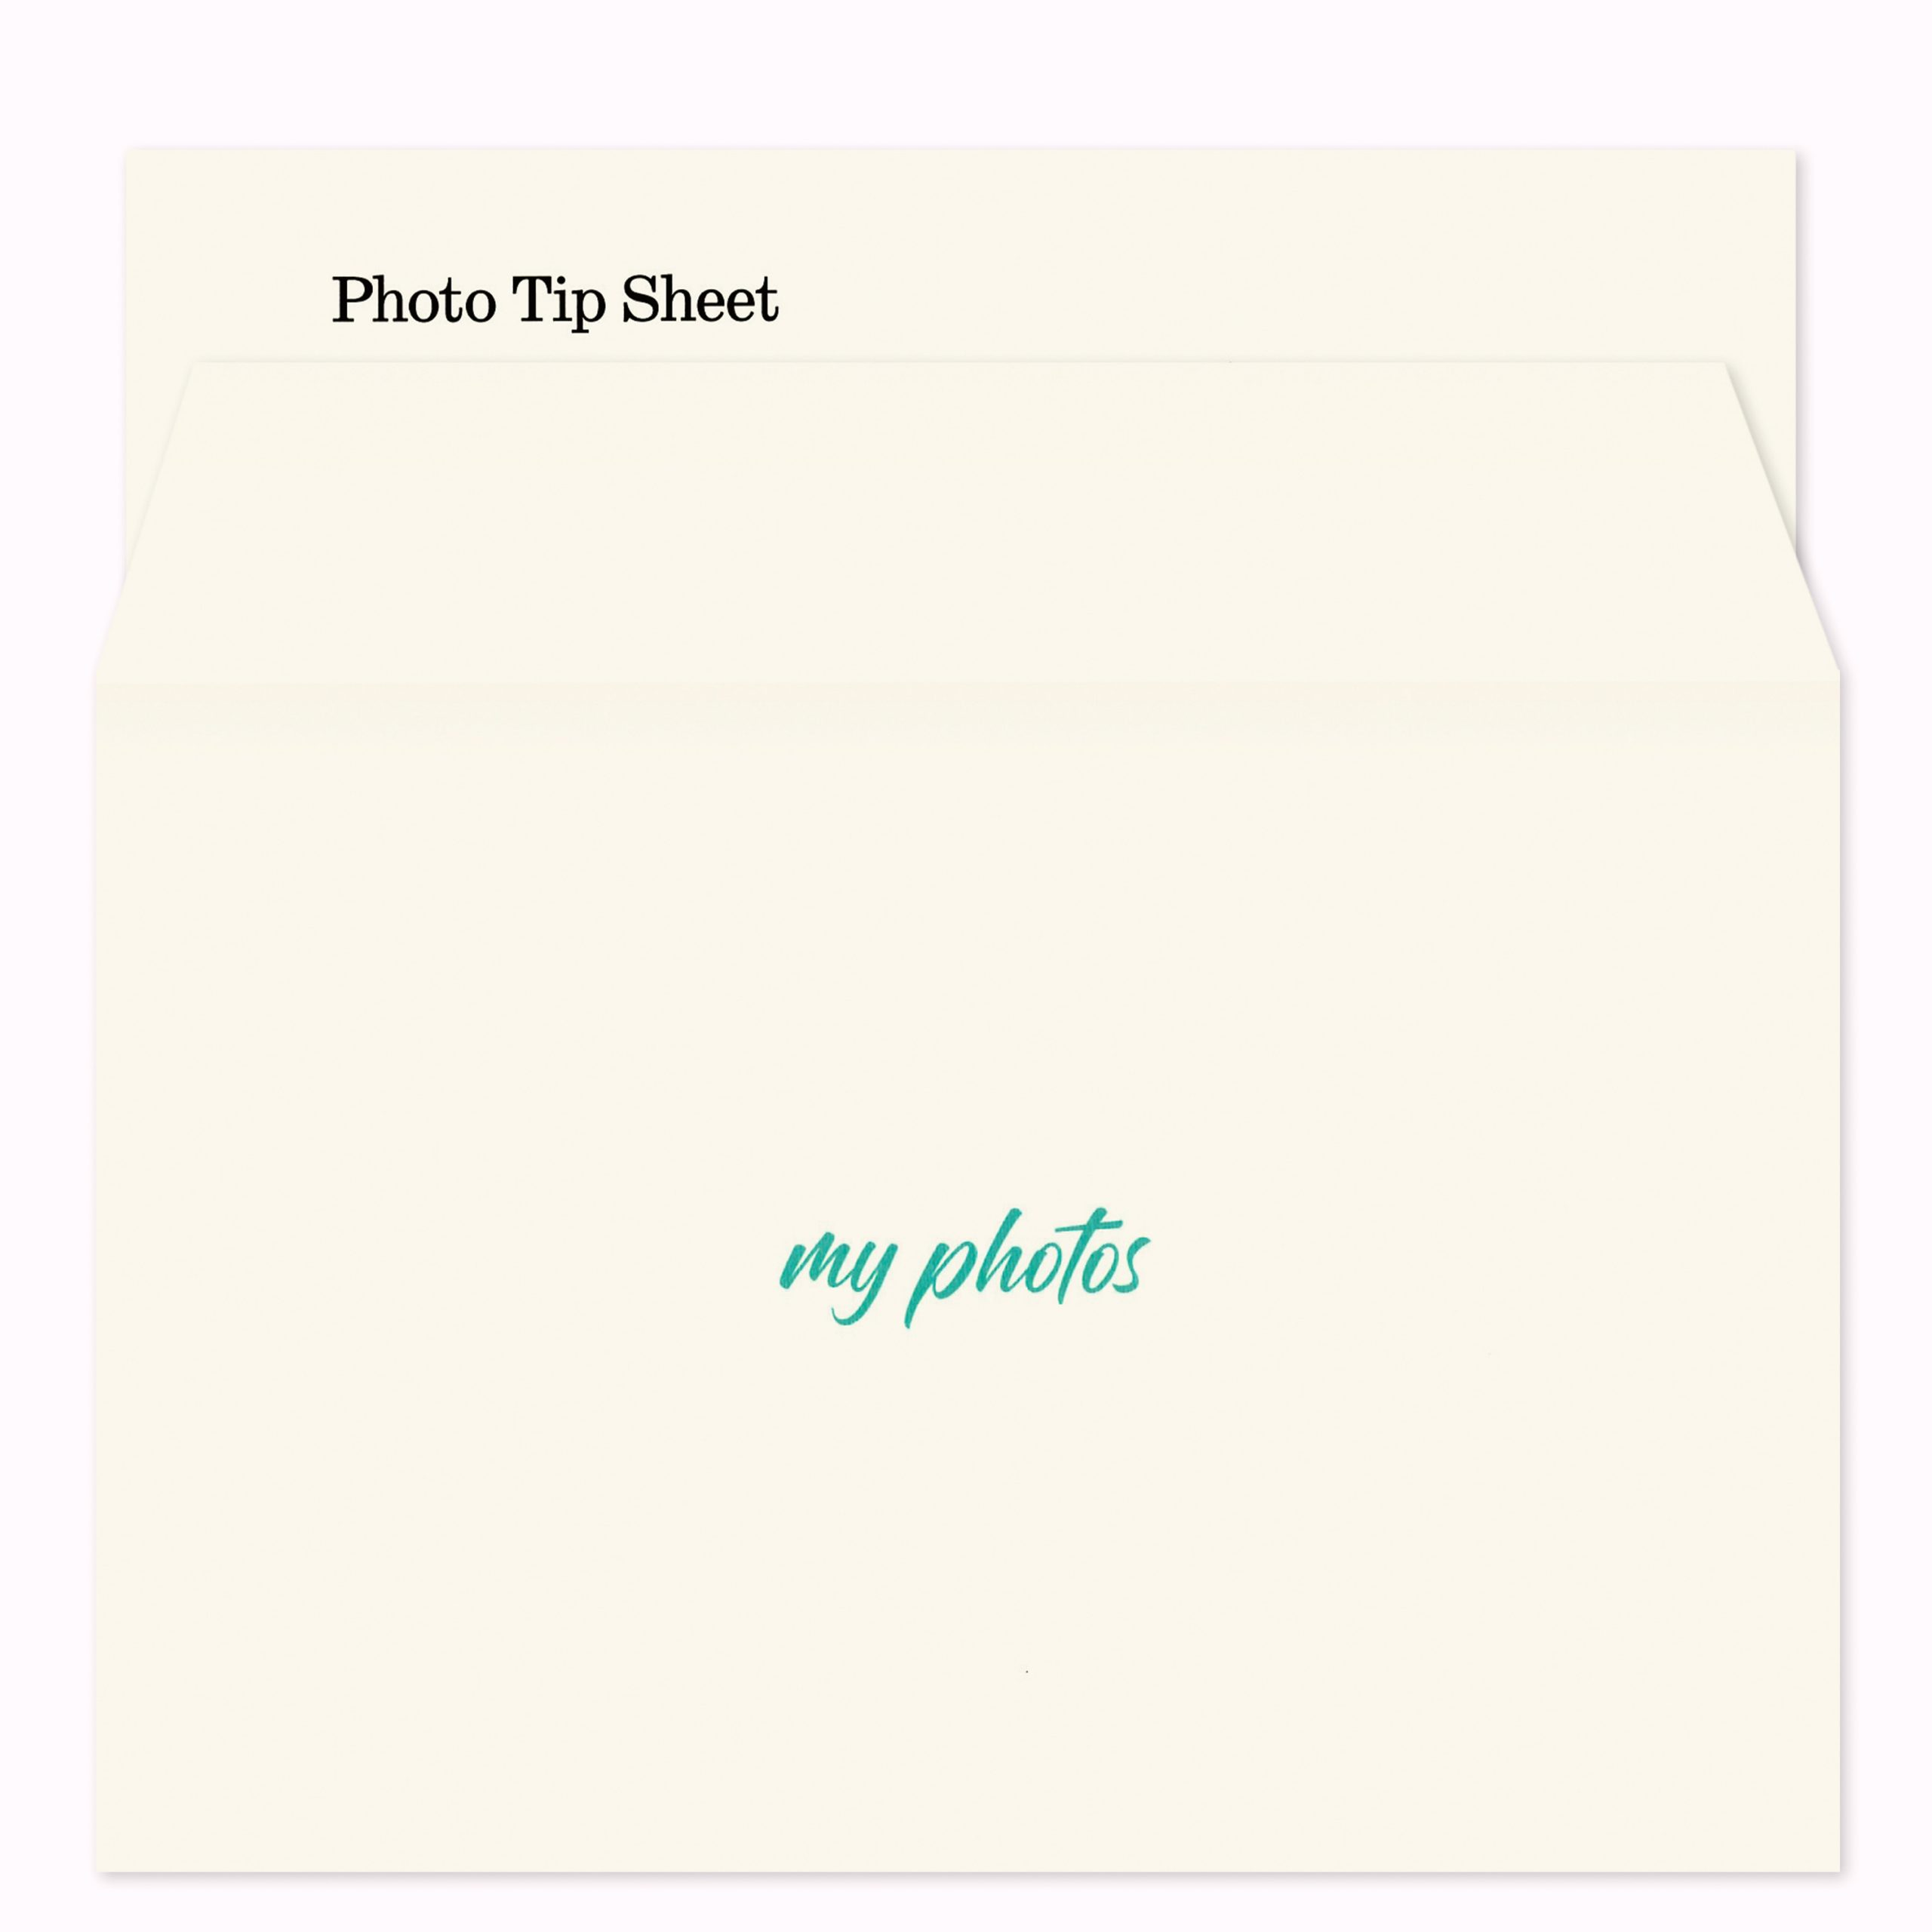 One cream-colored My Photos envelope and one Photo Tip Sheet for the Things You Need to Know Kit created by Circa Legacy